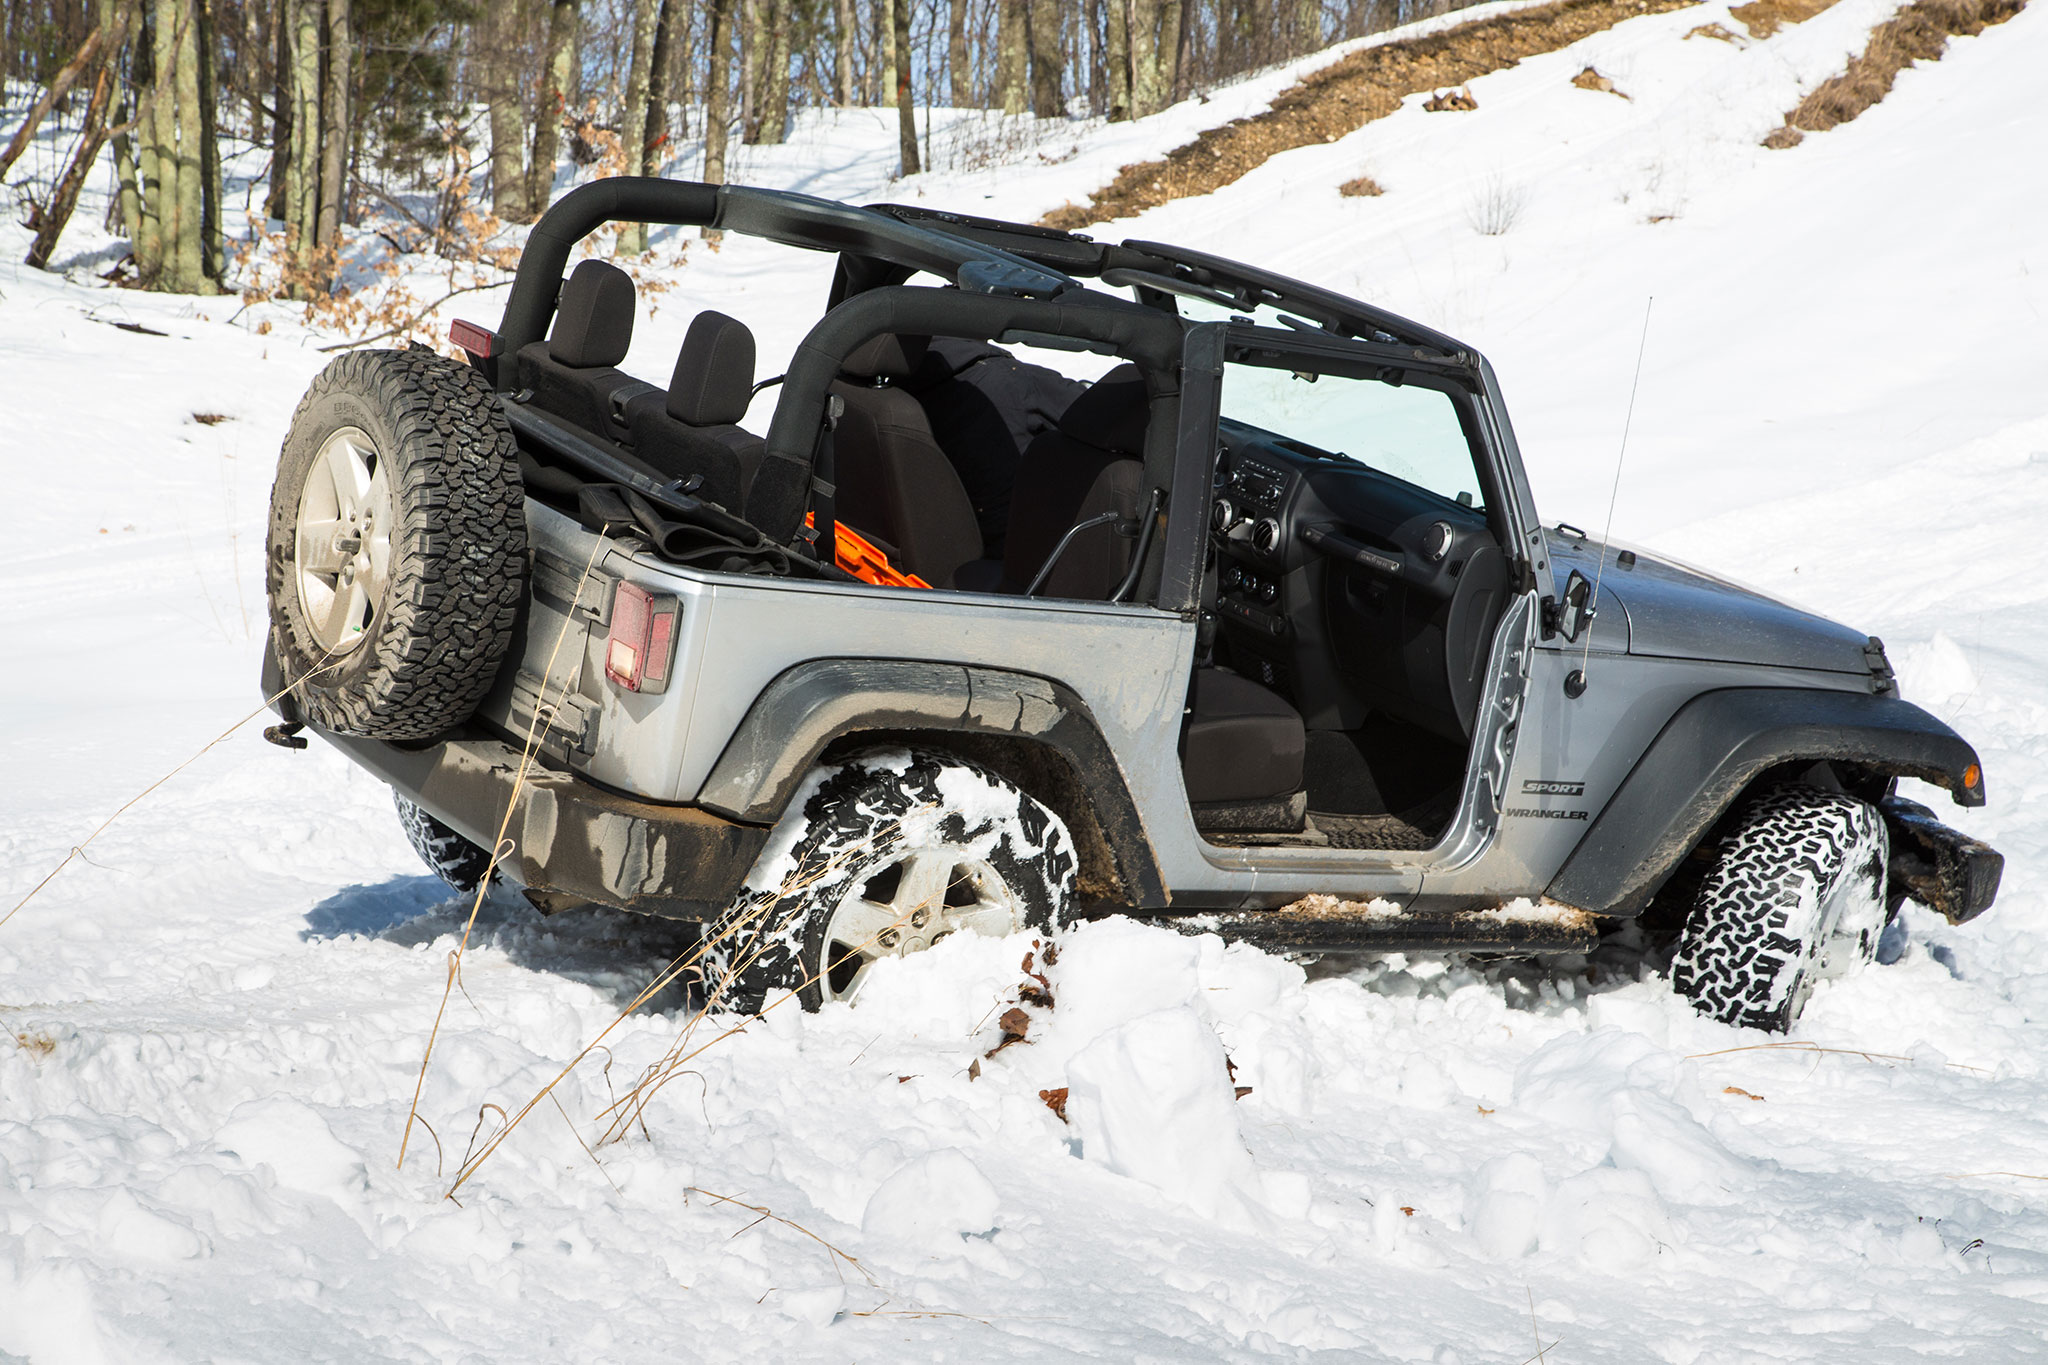 2016 Jeep Wrangler Unlimited Backcountry 4x4 Review